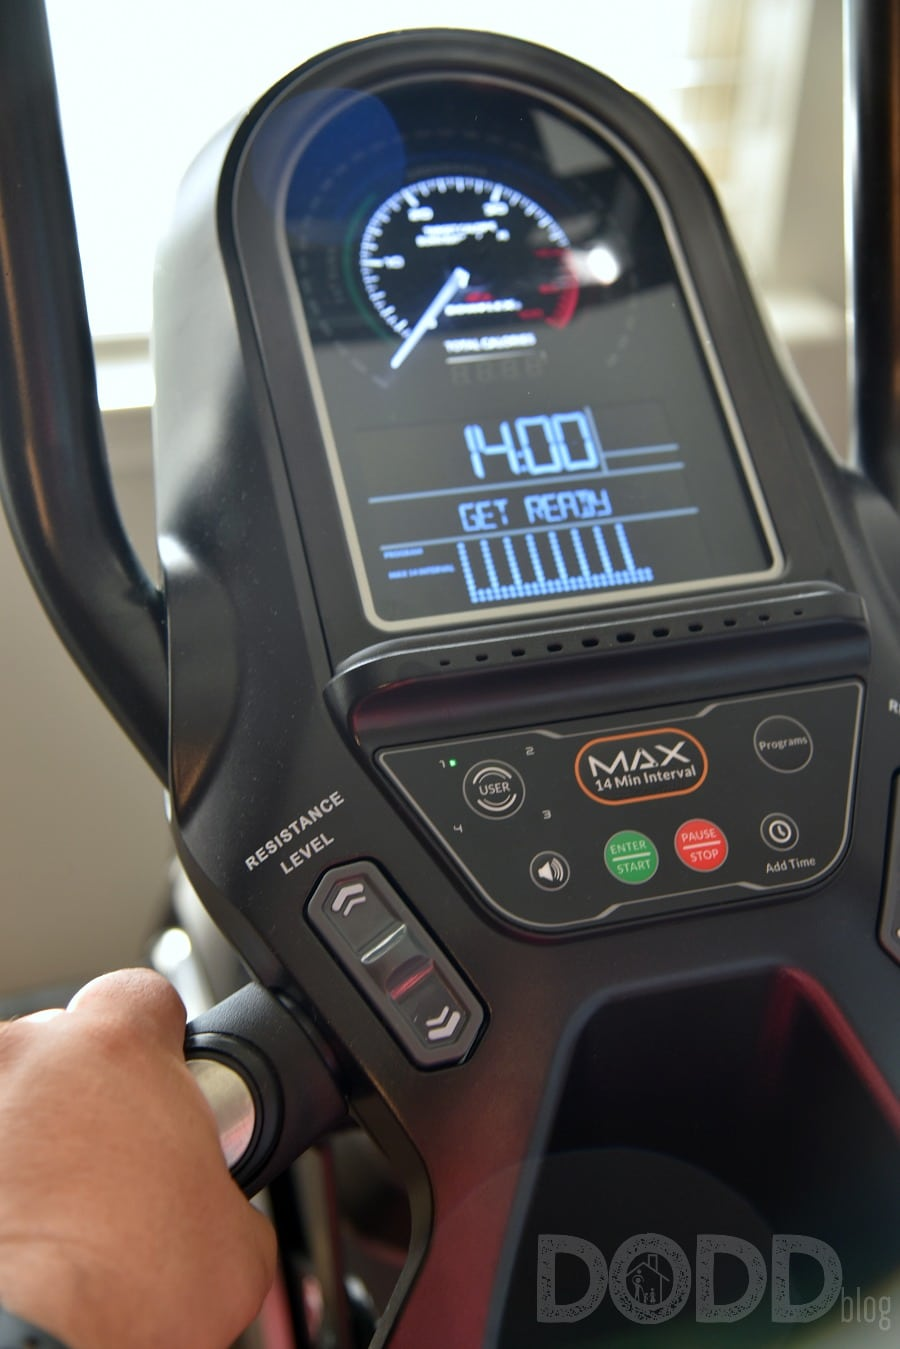 My First Impressions of the Bowflex Max Trainer – I am Scared